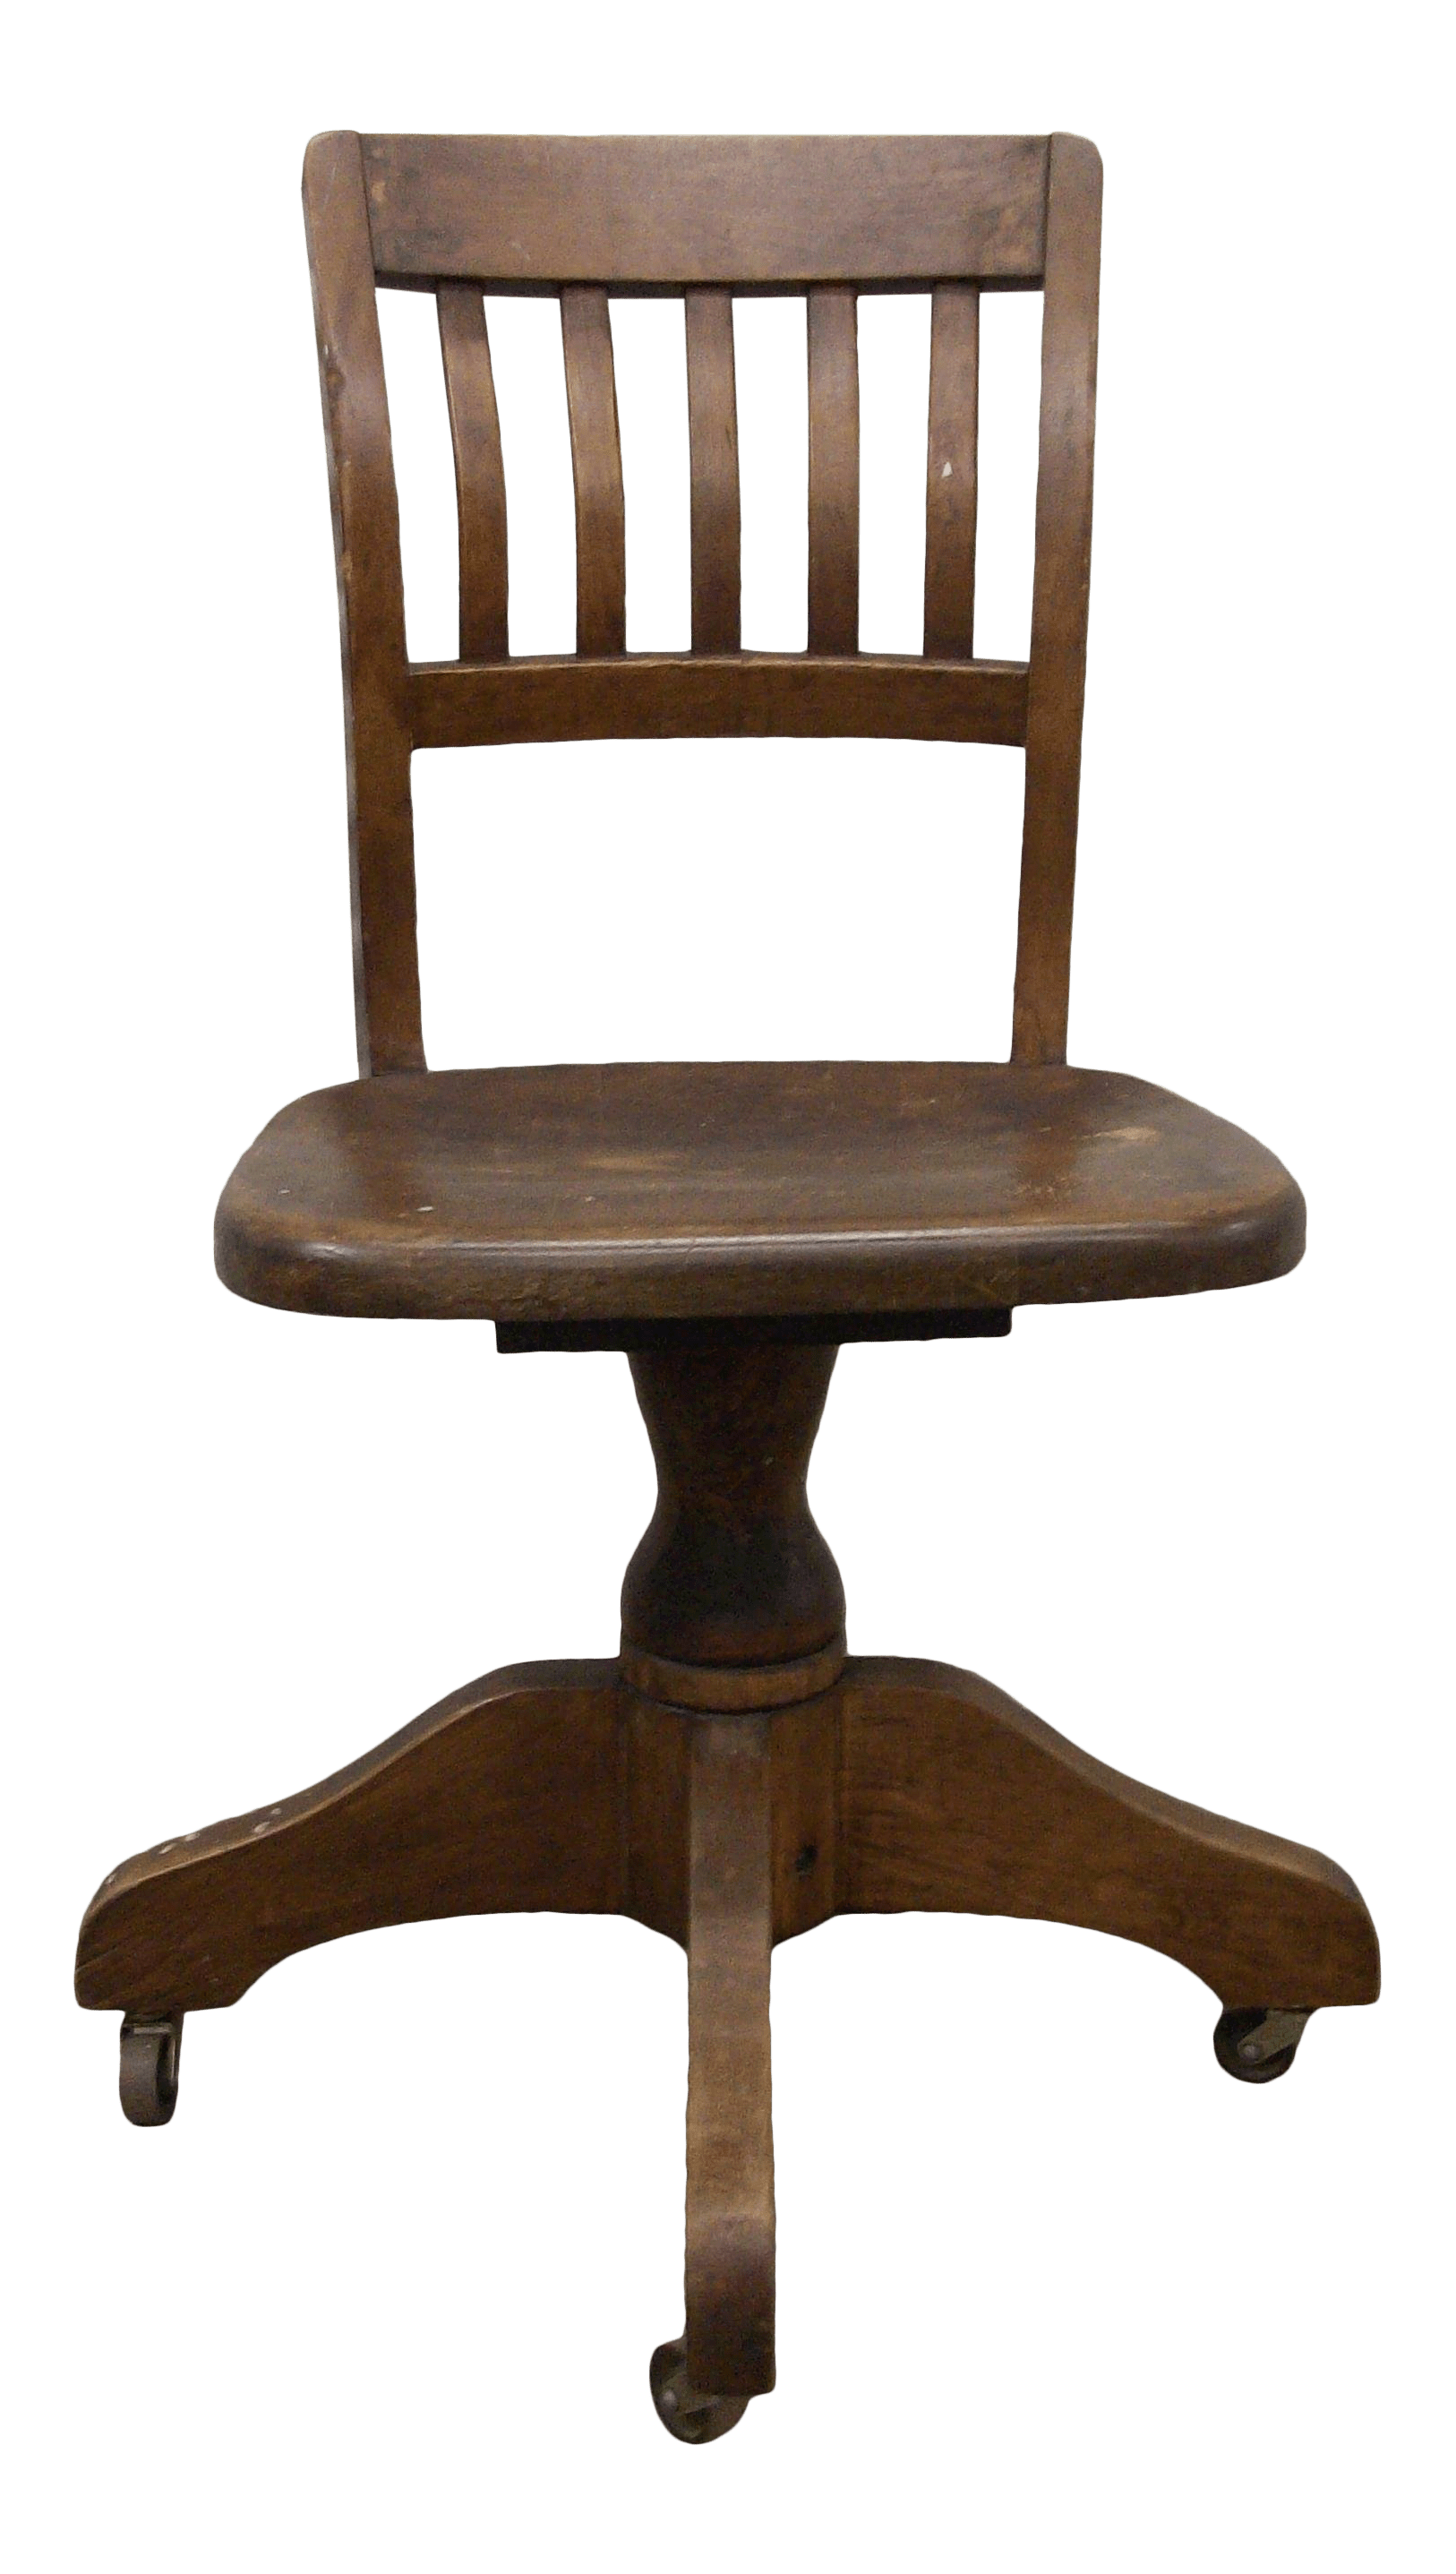 Cute Swivel Chair 1940s Antique Wood Task Office Swivel Chair